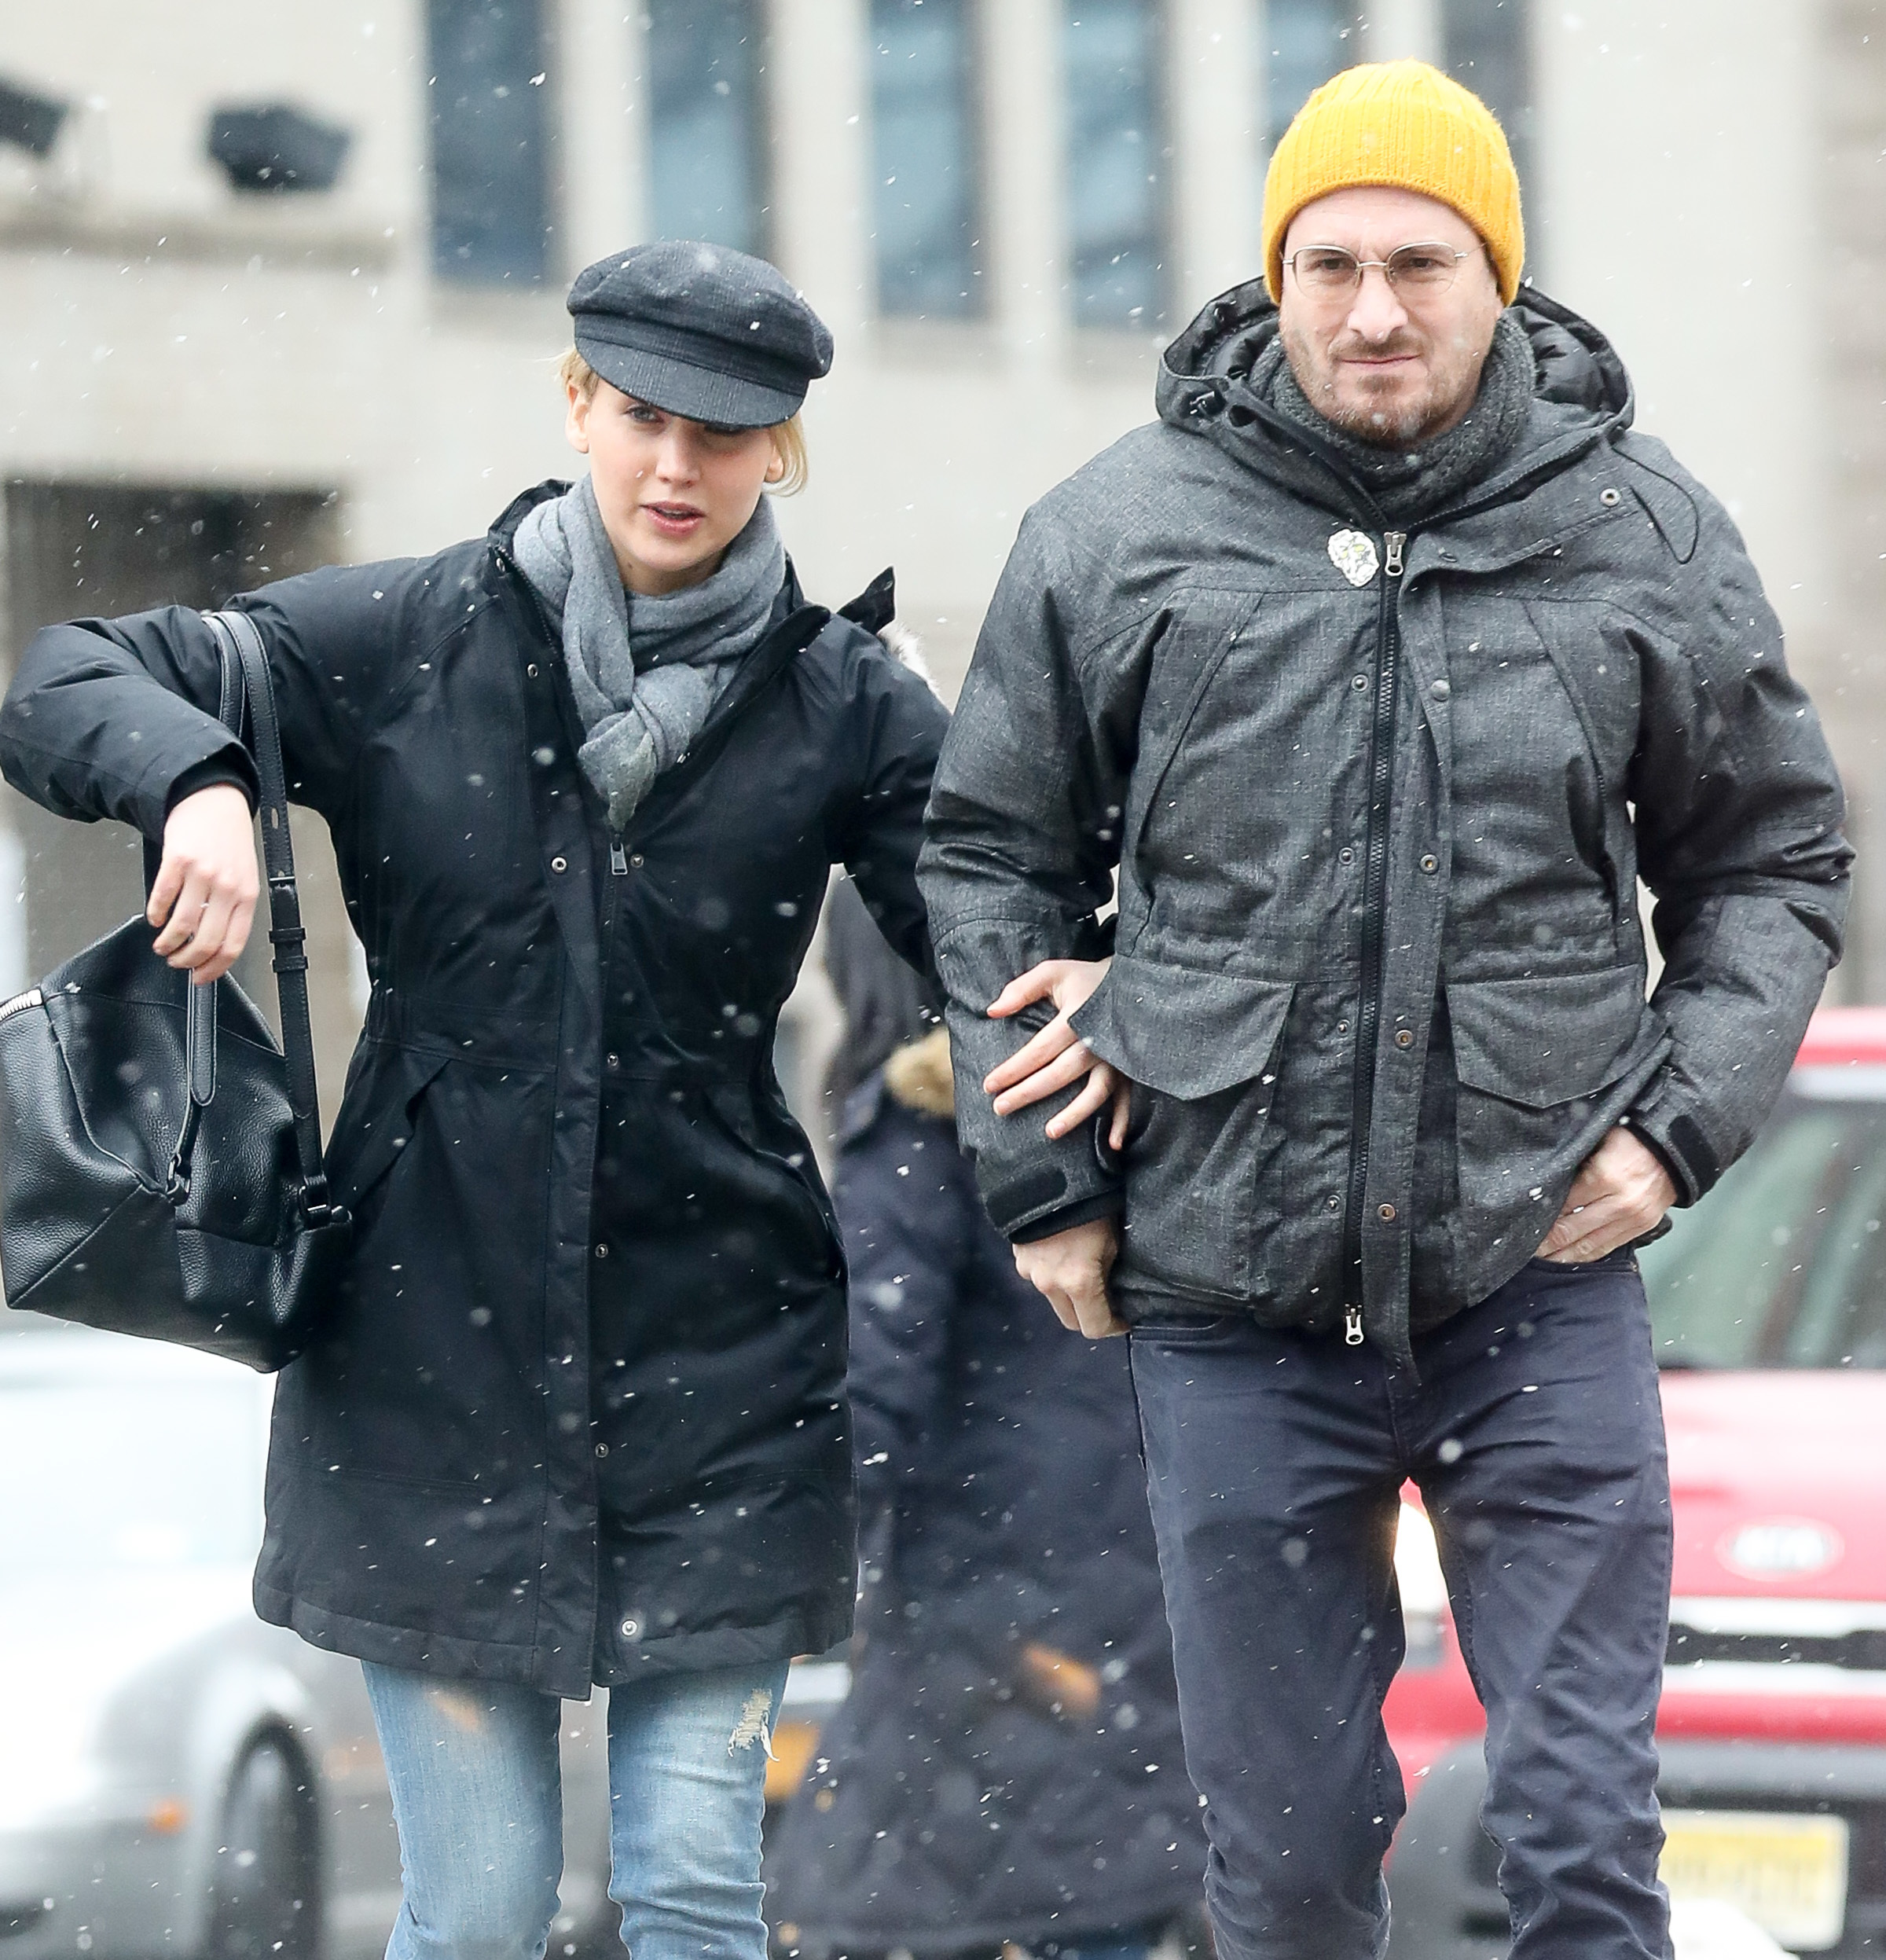 Jennifer Lawrence and Darren Aronofsky were Spotted arm in arm while out shopping in New York City on March 3, 2017.